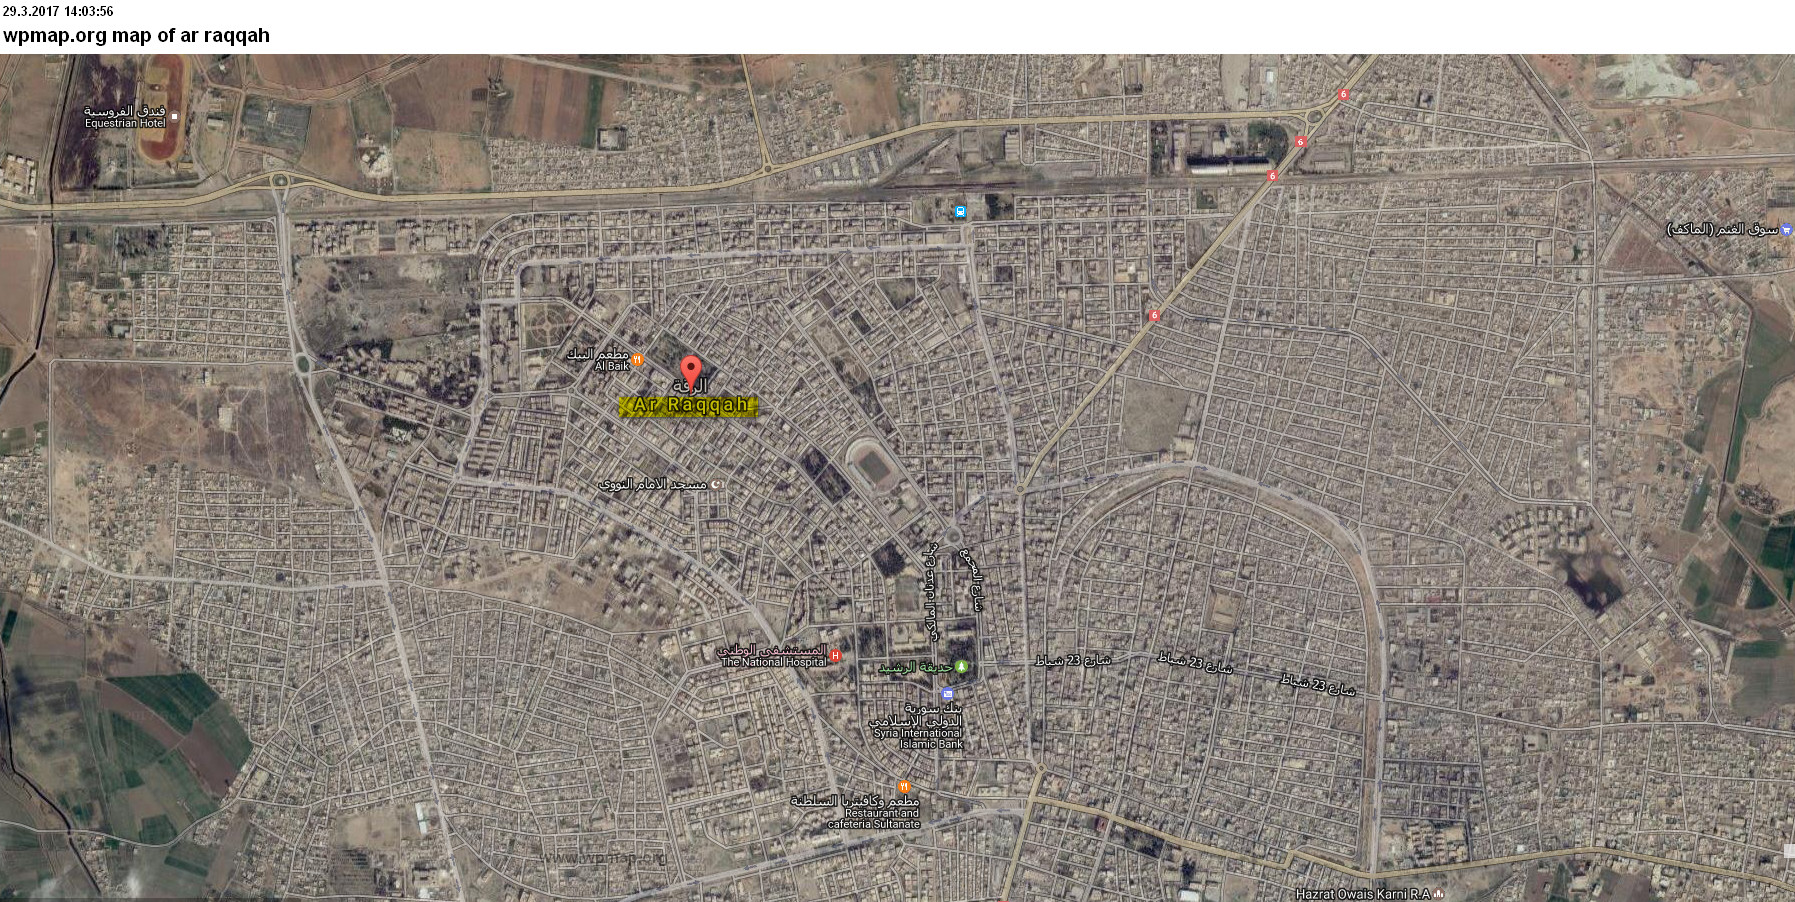 map of arraqqah Map Pictures